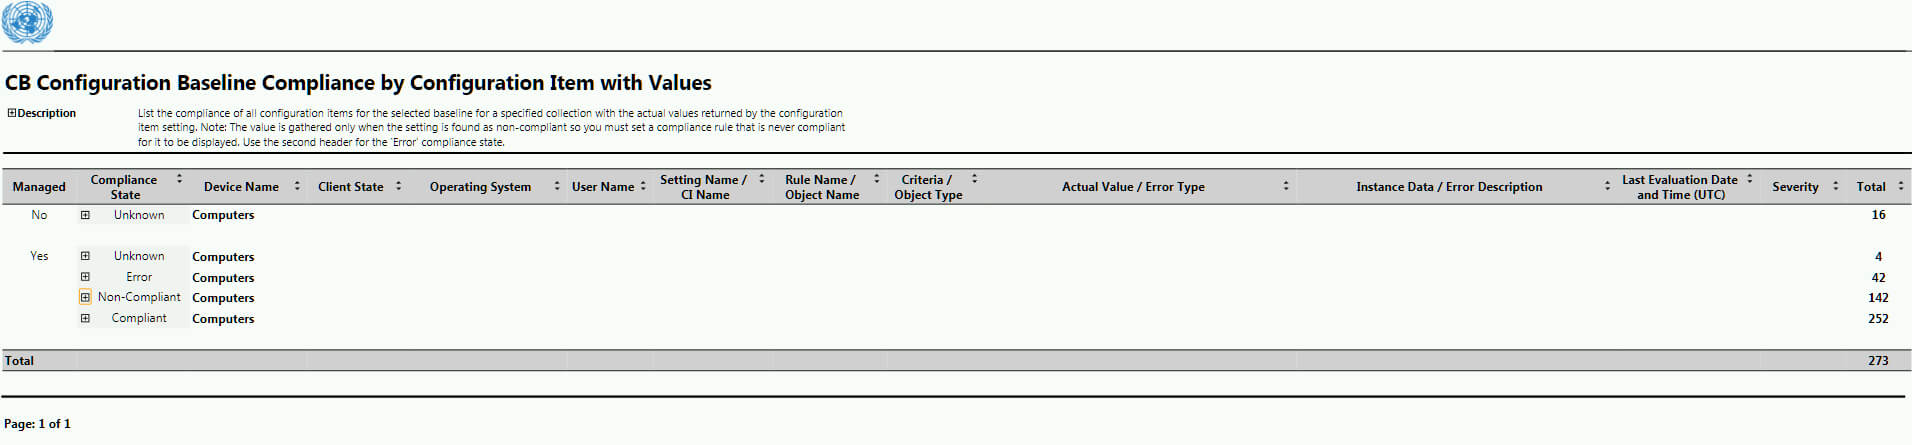 Baseline Reporting With Actual Values Output In Sccm intended for Baseline Report Template